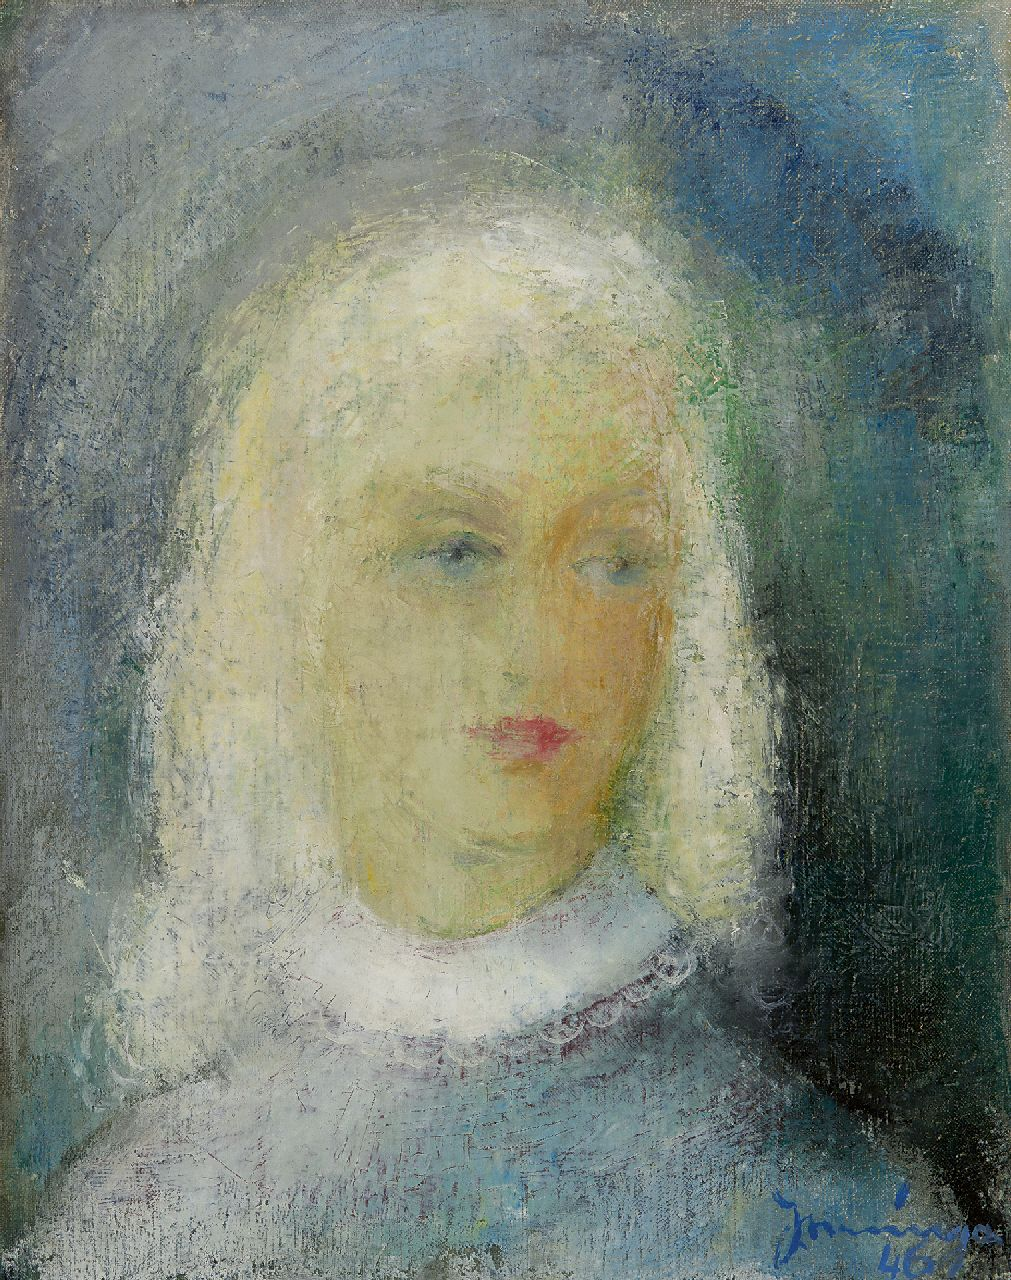 Nanninga J.  | Jacob 'Jaap' Nanninga, A portrait of a girl, oil on canvas 50.9 x 39.8 cm, signed l.r. and dated '46